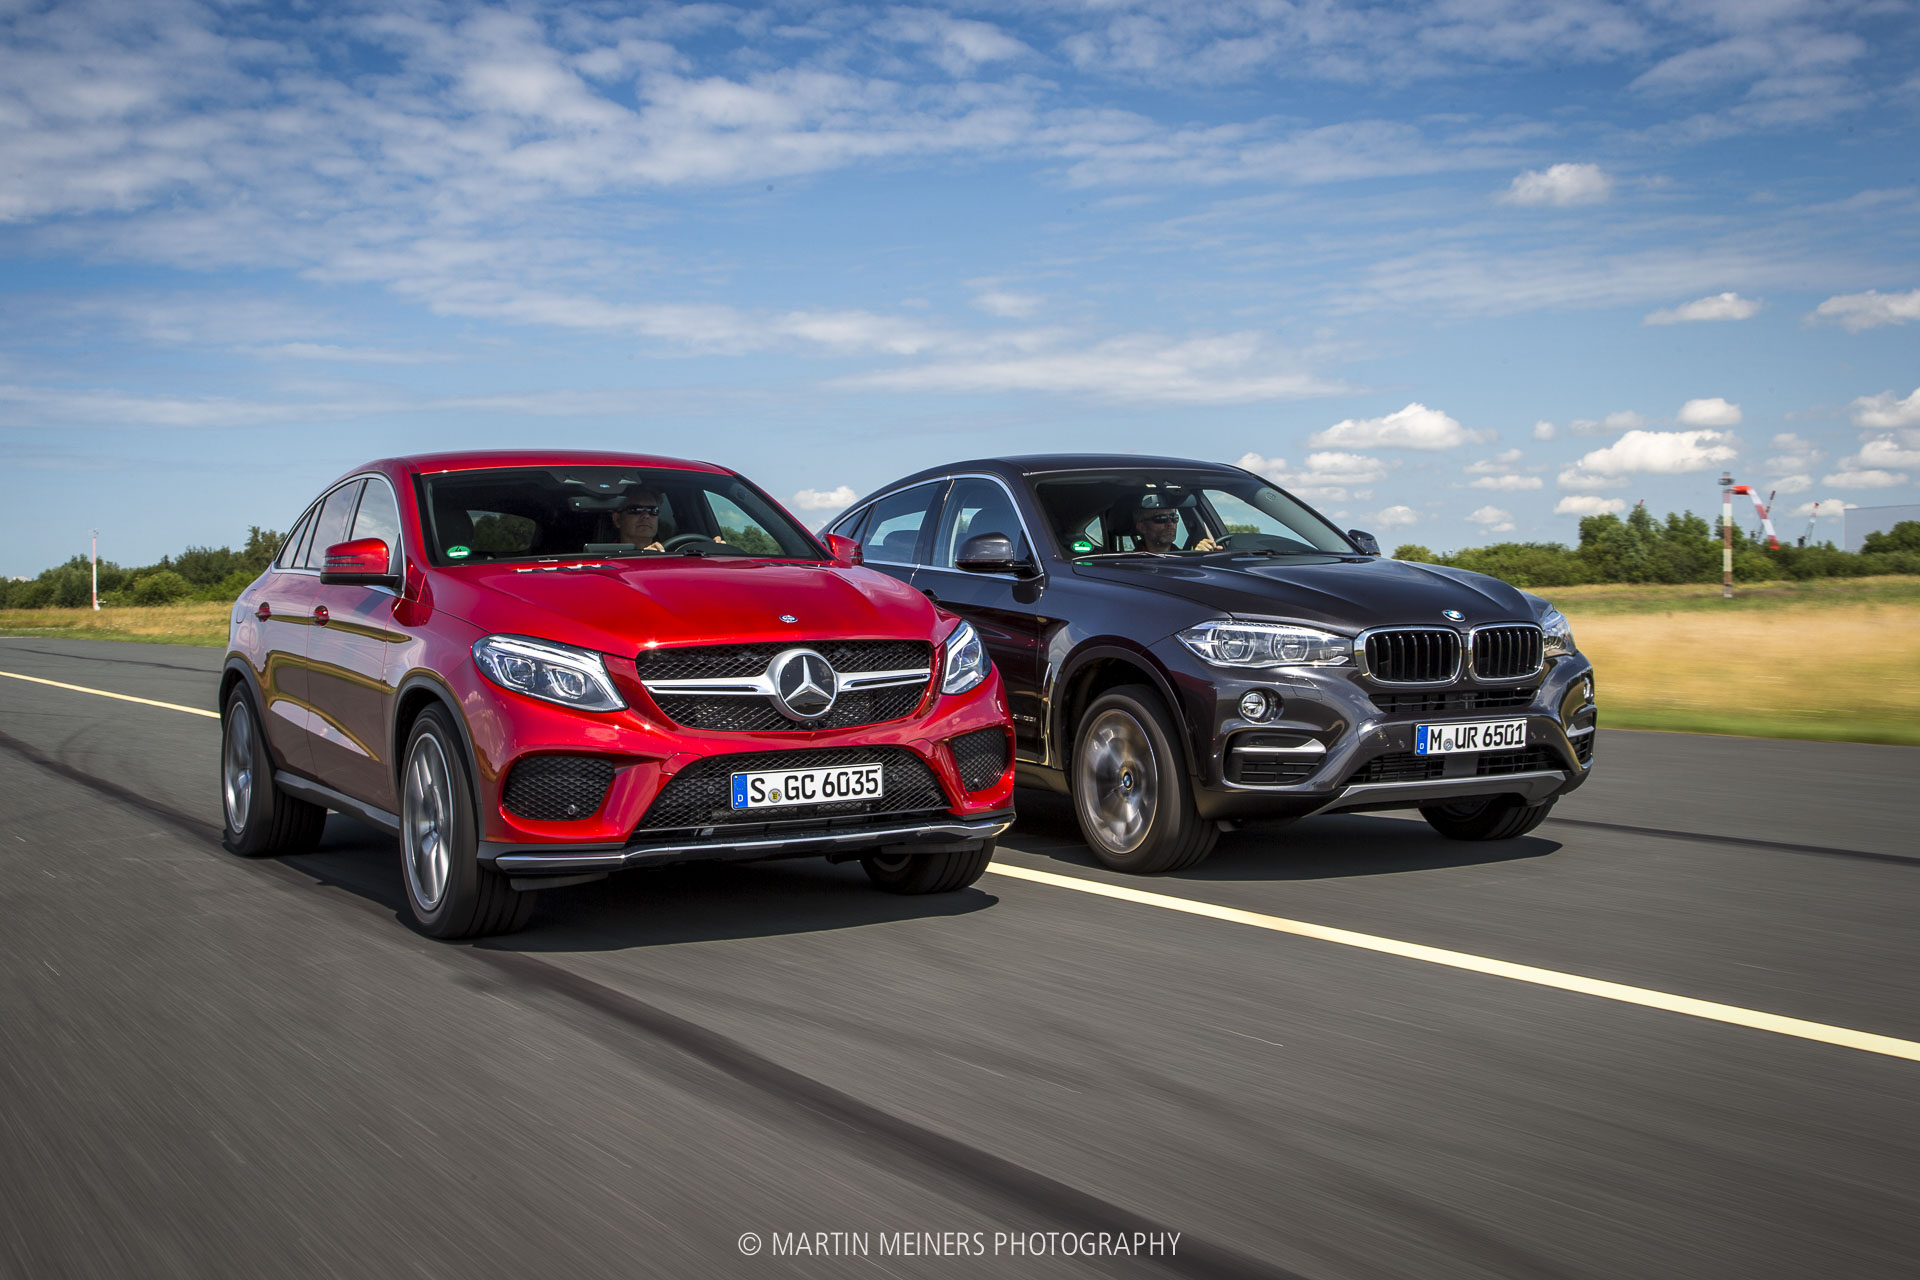 test bmw x6 vs mercedes gle 400 auto bild martin meiners photography. Black Bedroom Furniture Sets. Home Design Ideas